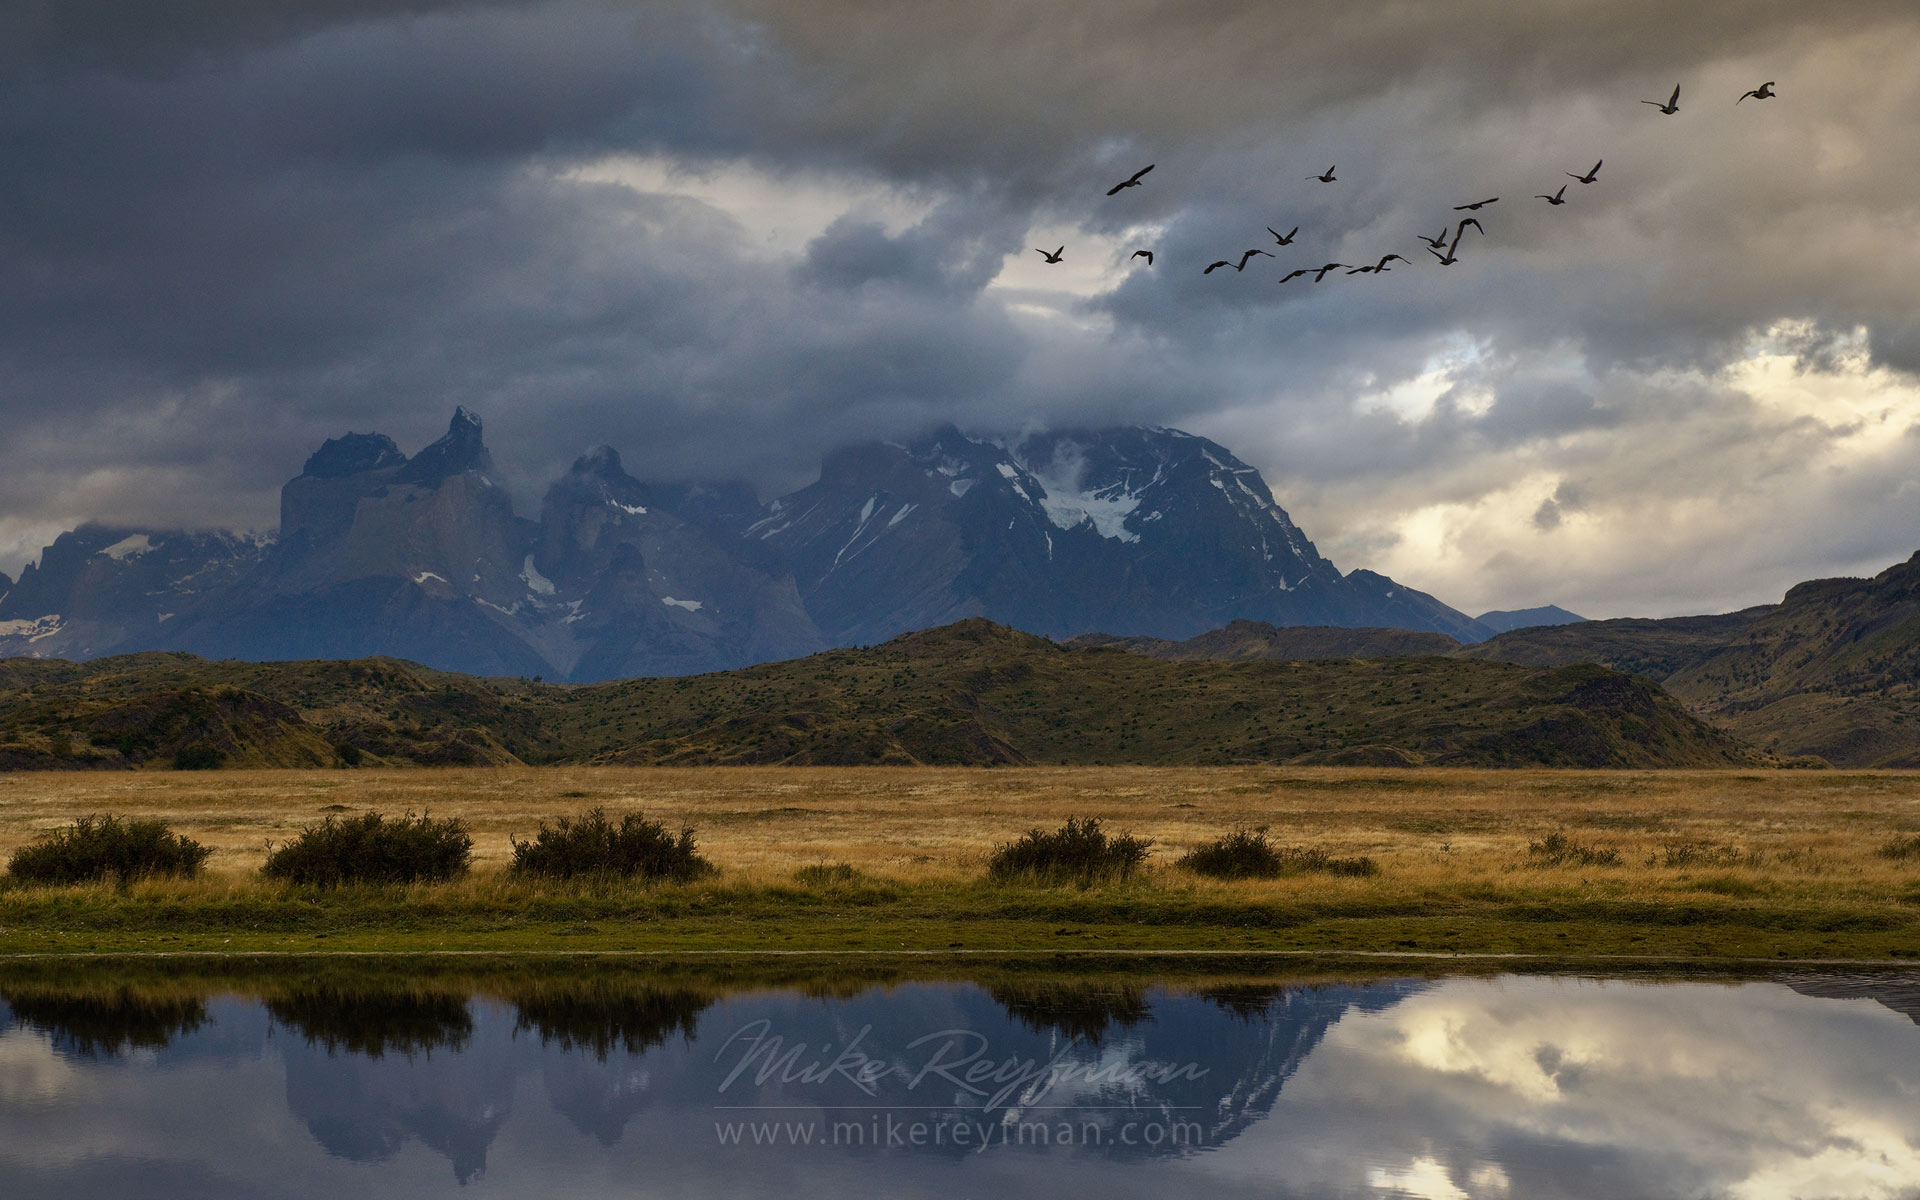 Flock of Upland Geese flying over Patagonia Steppe with Cordillera del Paine on the background. Ultima Esperanza Province, Magallanes and Antartica Chilena Region XII, Patagonia, Chile. - Torres-Del-Paine-National-Park-Patagonia-Chile - Mike Reyfman Photography